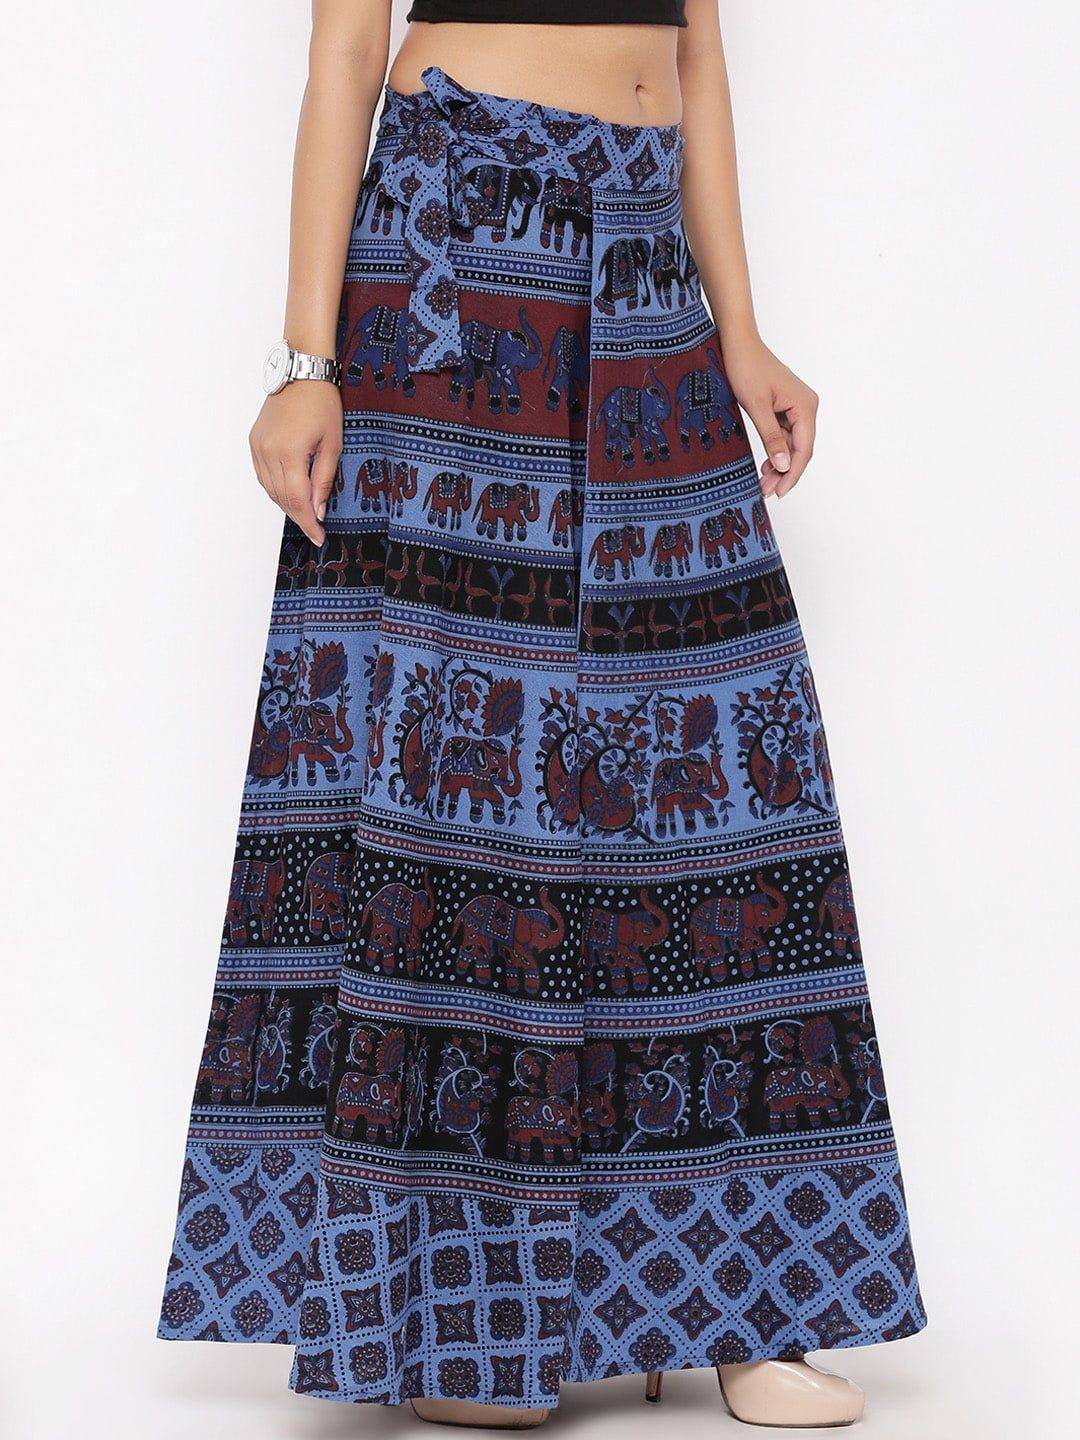 Ethnic Skirts | Buy Ethnic Skirts Online in India at Best Price